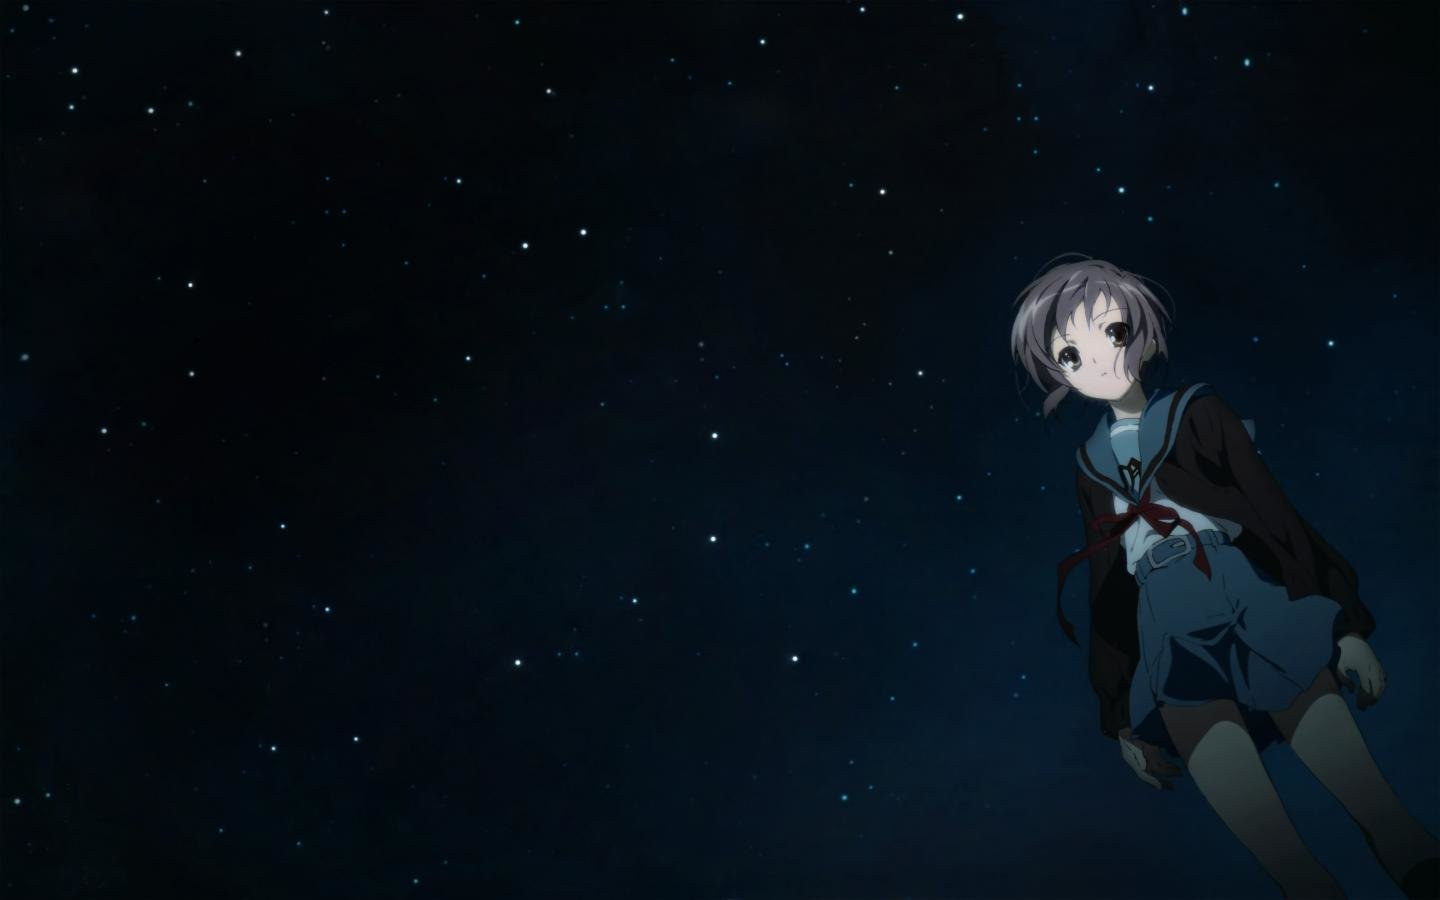 Free Yuki Nagato high quality wallpaper ID:138832 for hd 1440x900 desktop